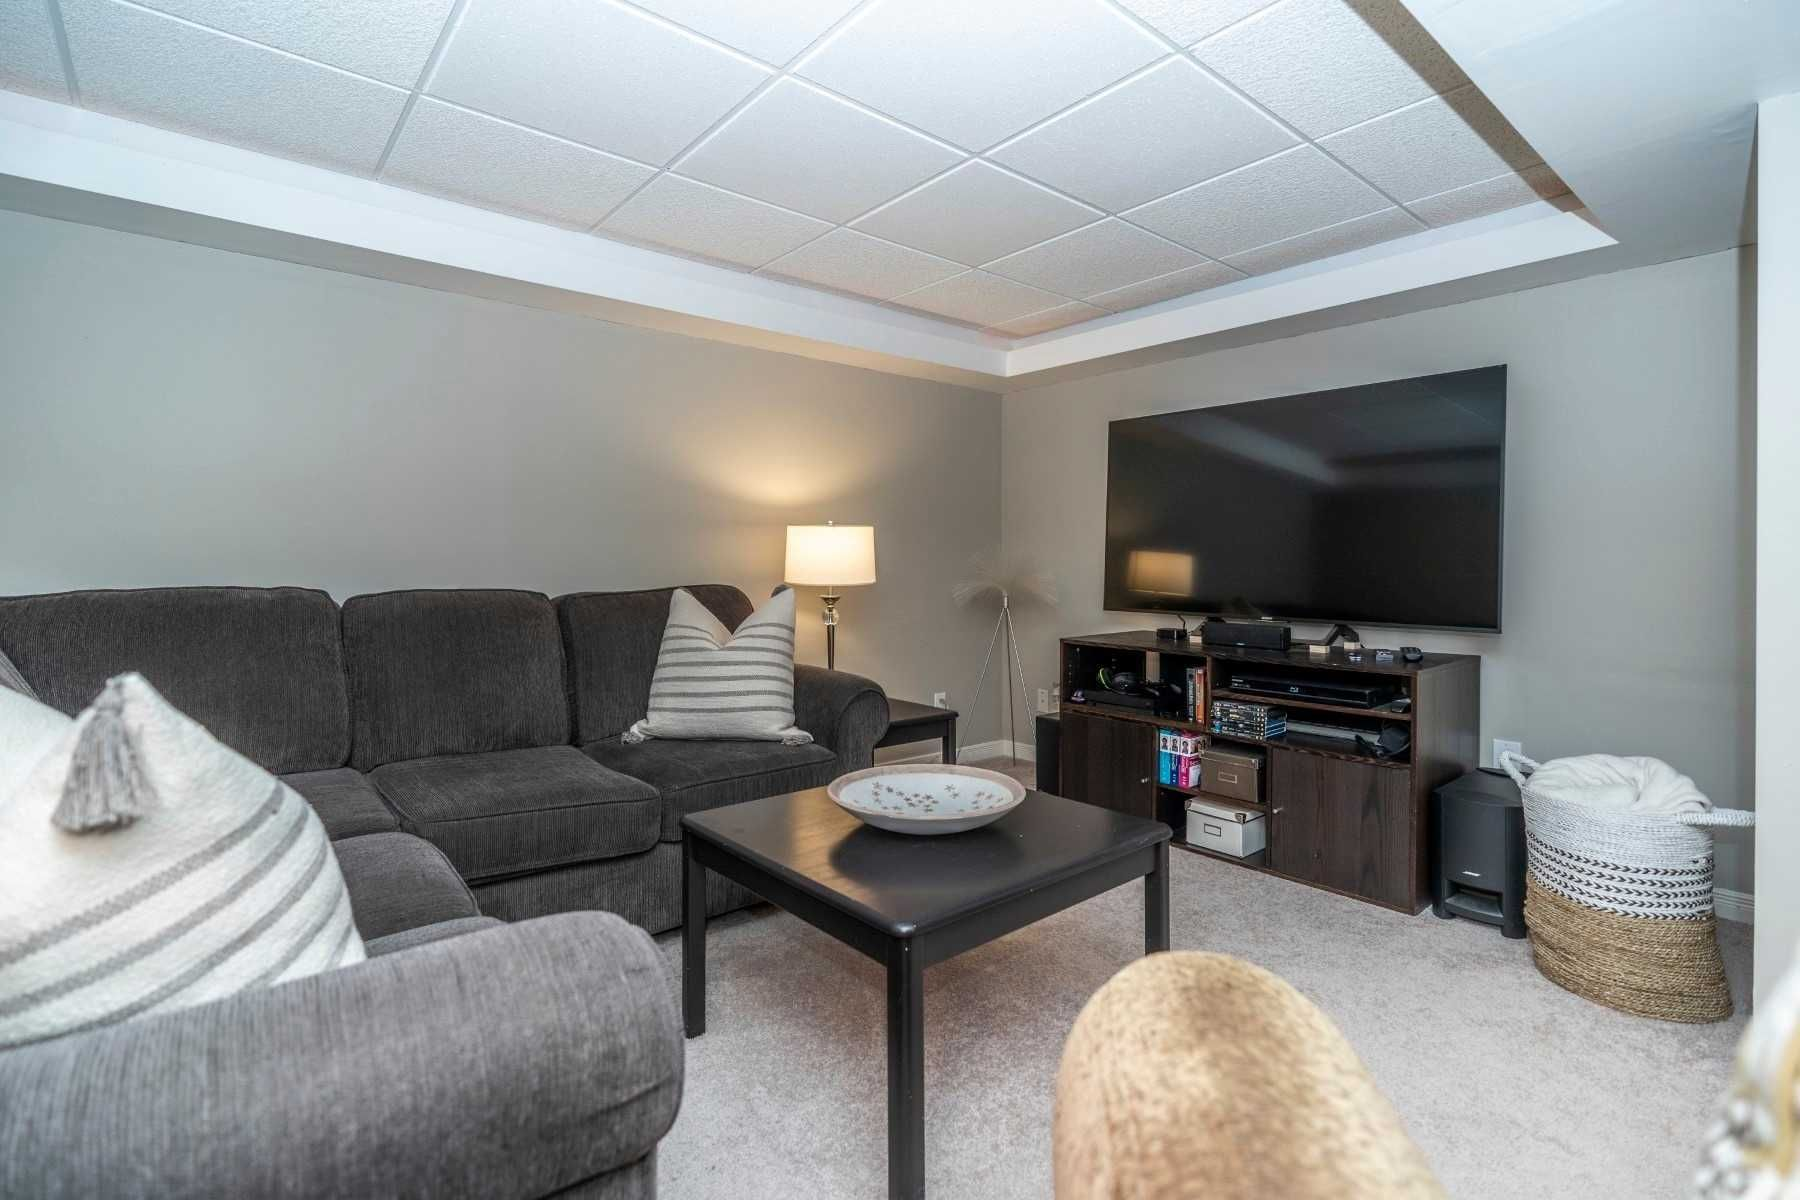 Photo 17: Photos: 547 Camelot Drive in Oshawa: Eastdale House (2-Storey) for sale : MLS®# E4529227